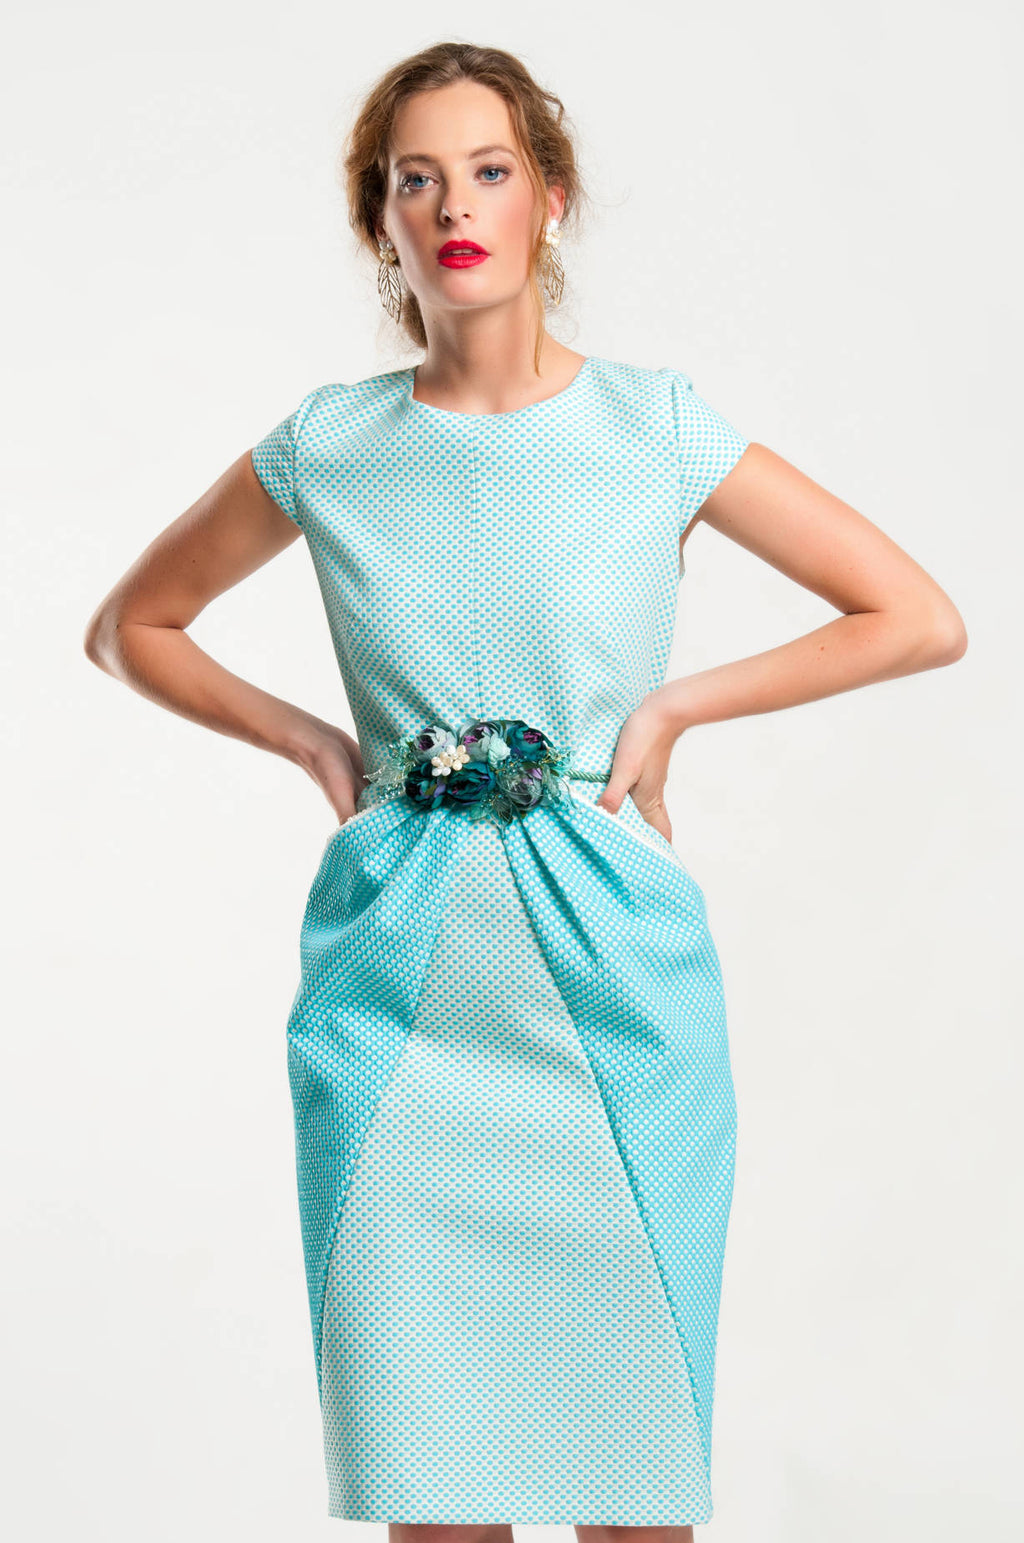 Mave Merch Mother of the Bride Dress - Turquoise Green